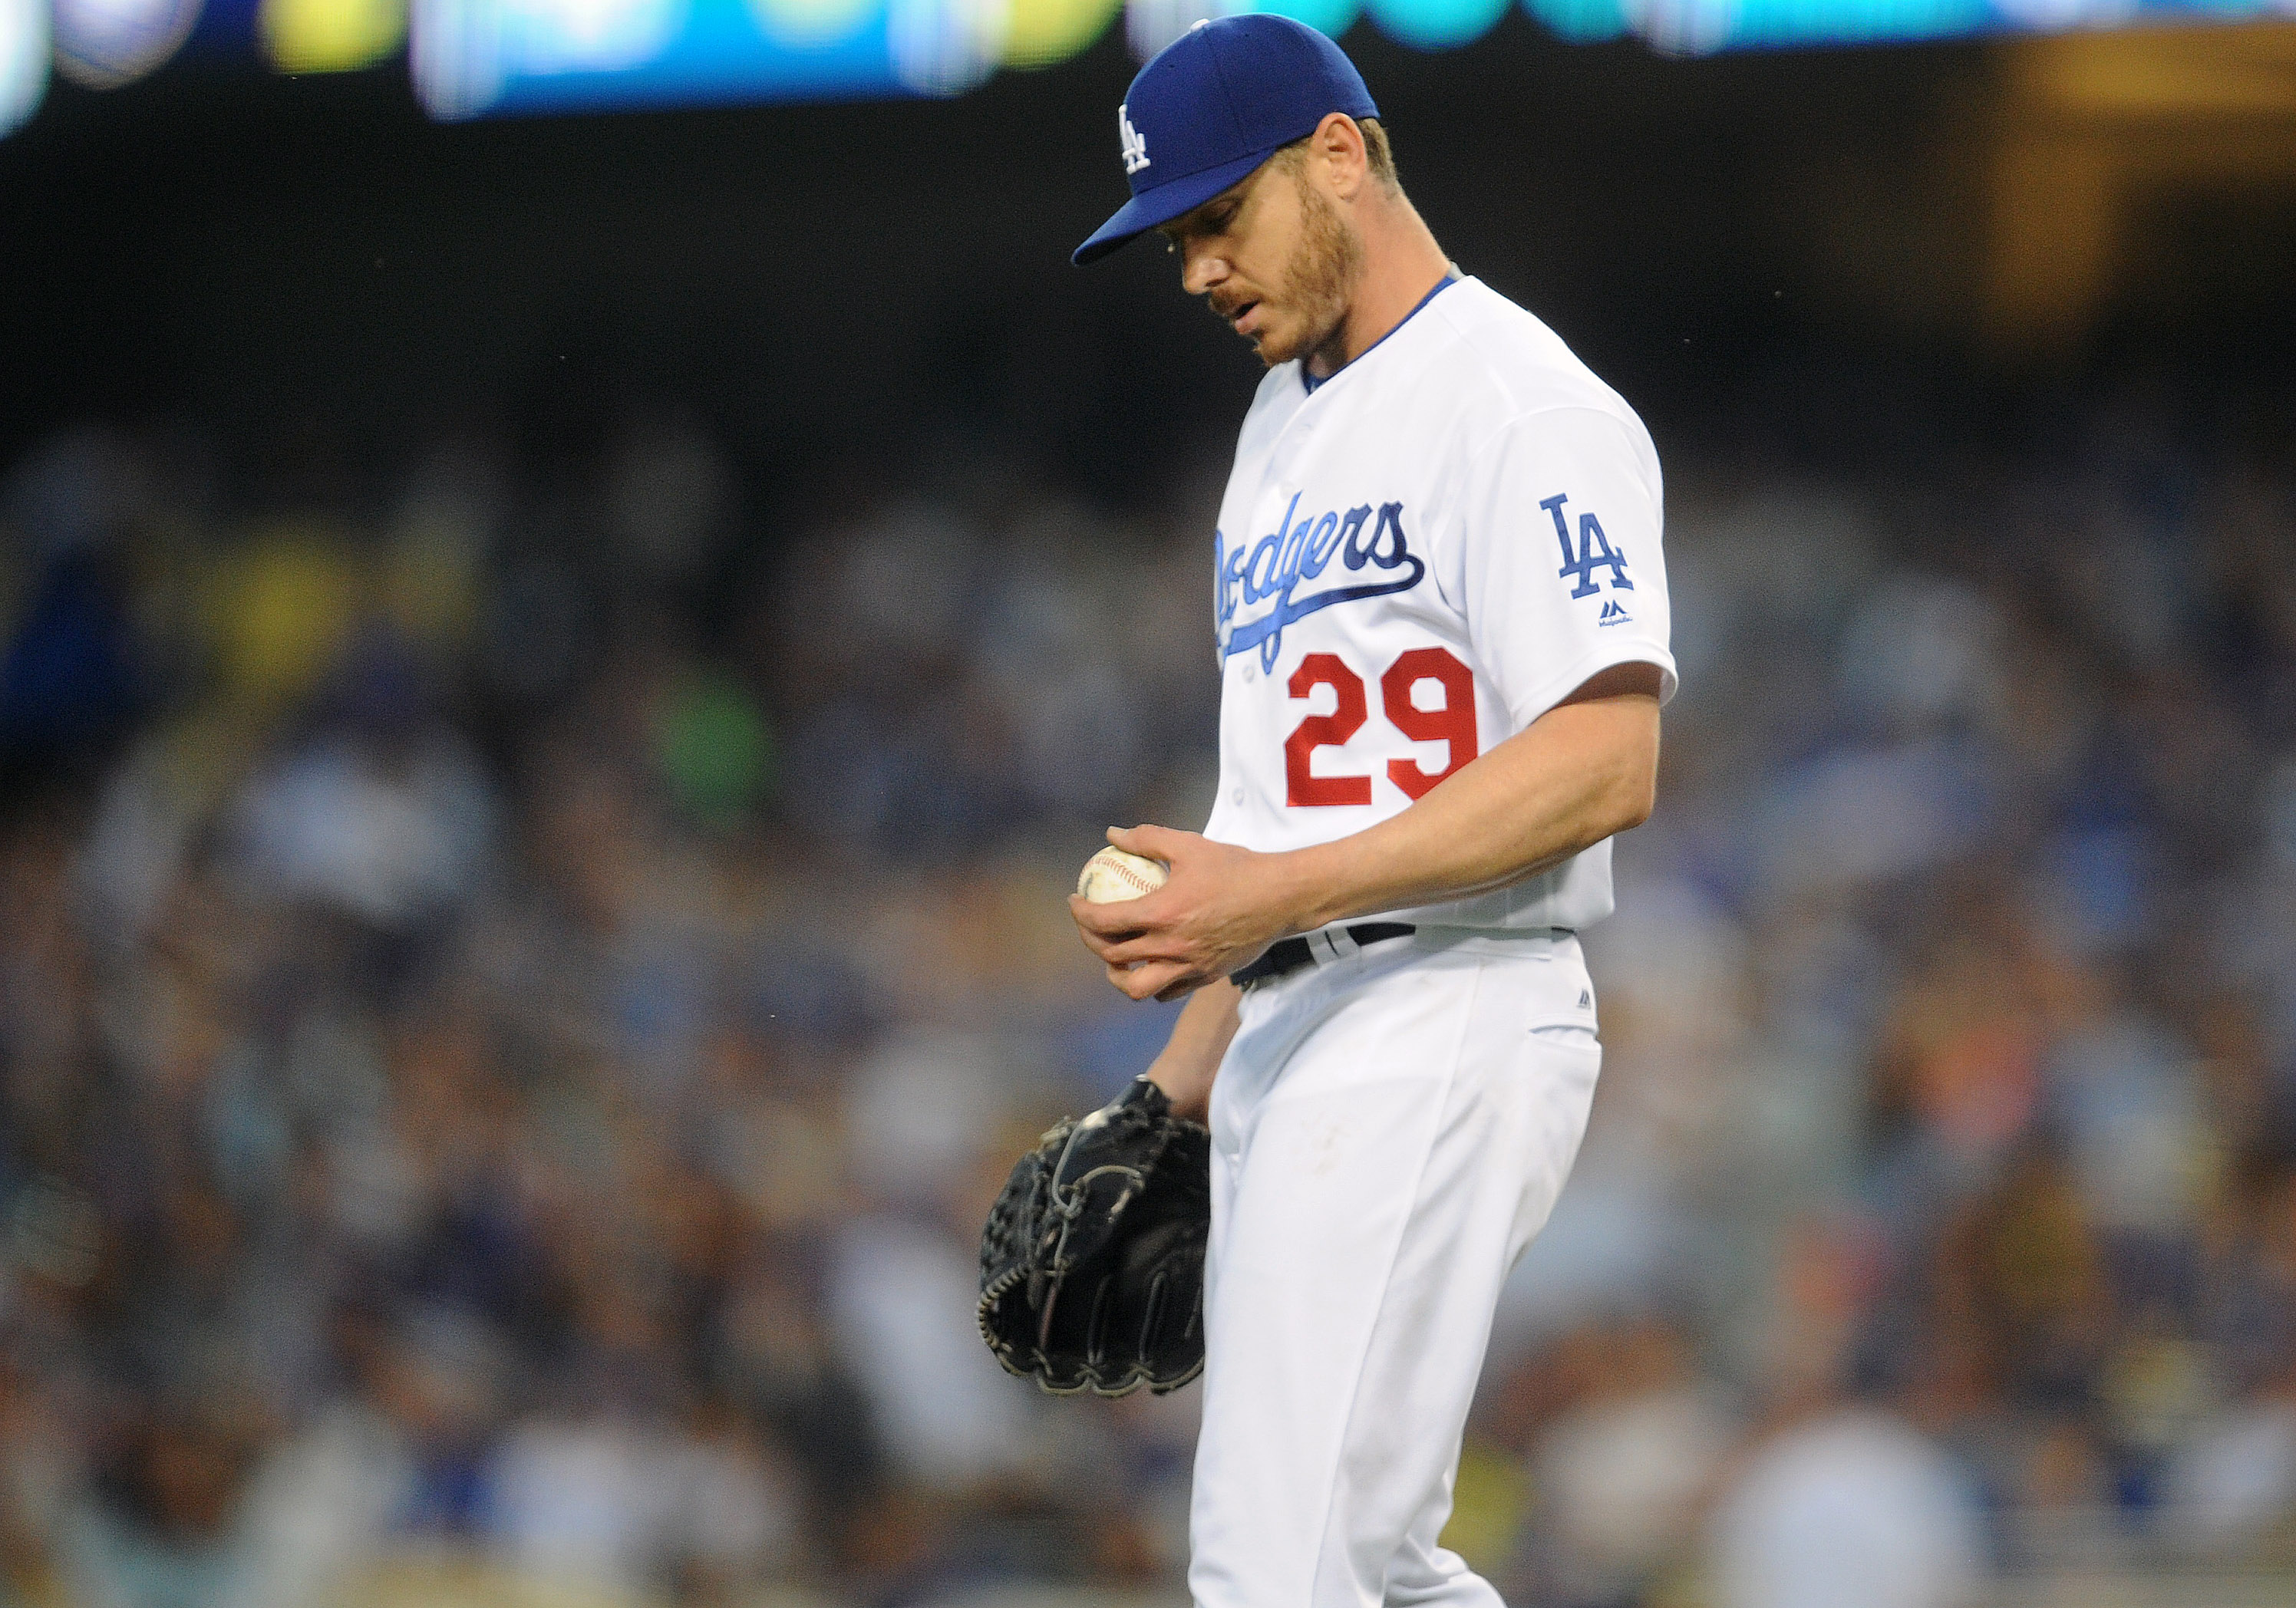 9344805-mlb-milwaukee-brewers-at-los-angeles-dodgers